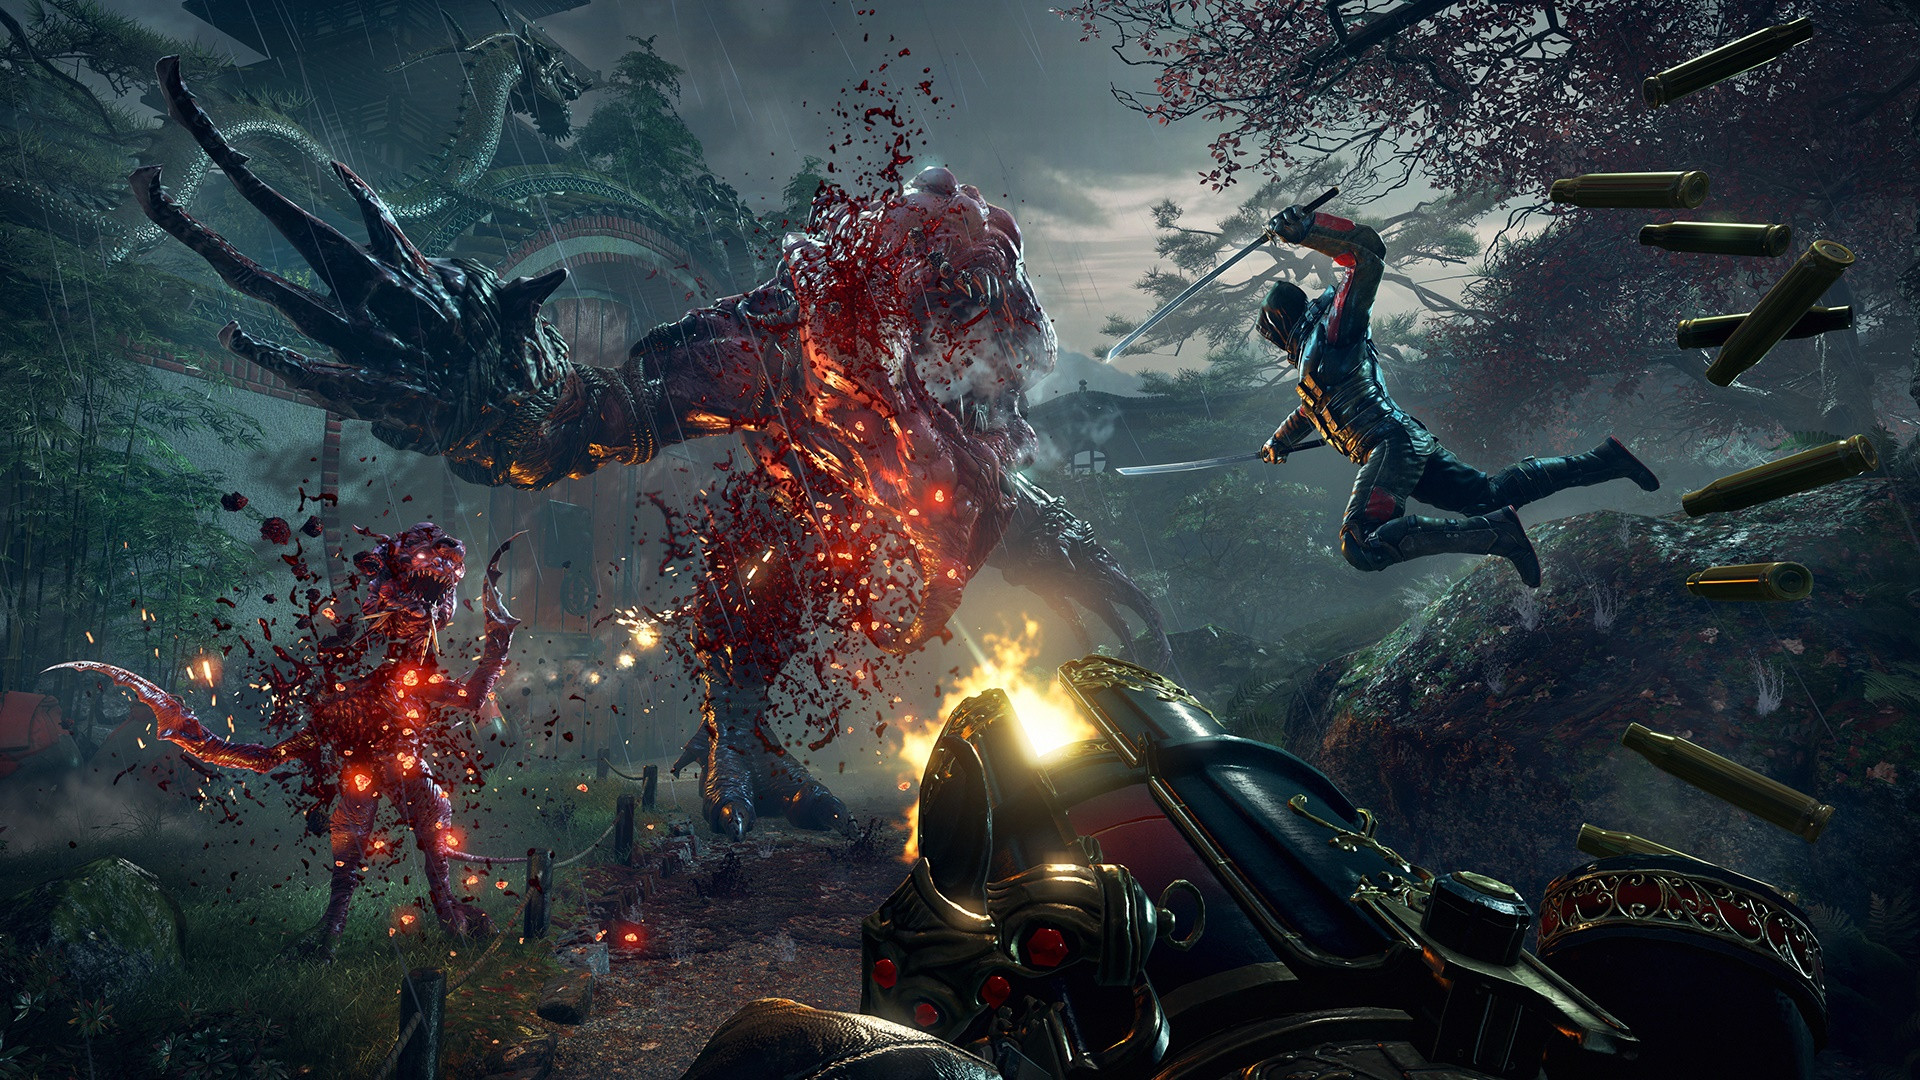 5. Shadow Warrior 2